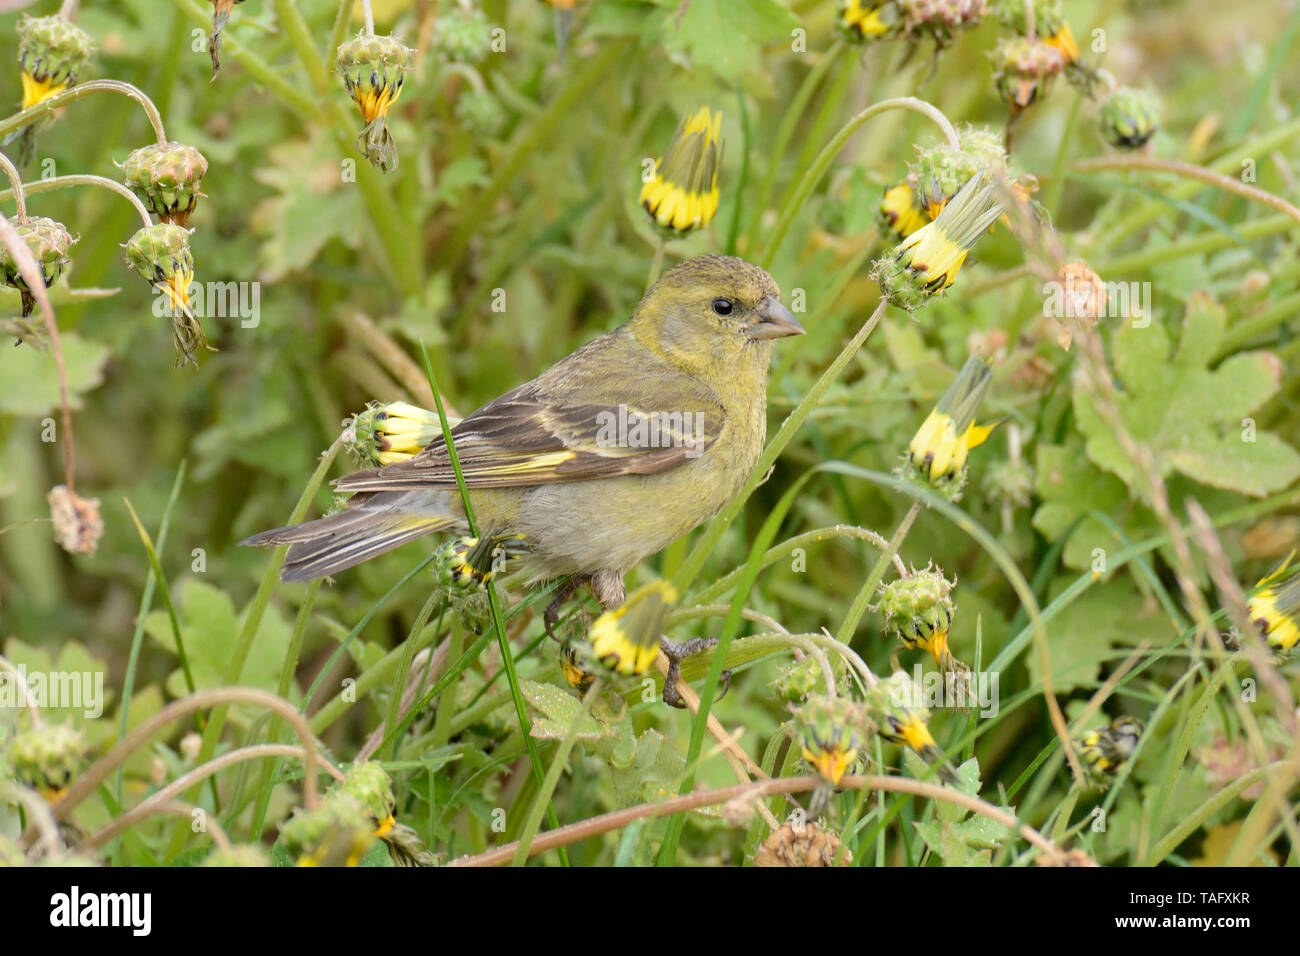 Black-chinned Siskin (Spinus barbatus), Fringillidae, female, Cobquecura, VIII Region of Biobío, Chile - Stock Image